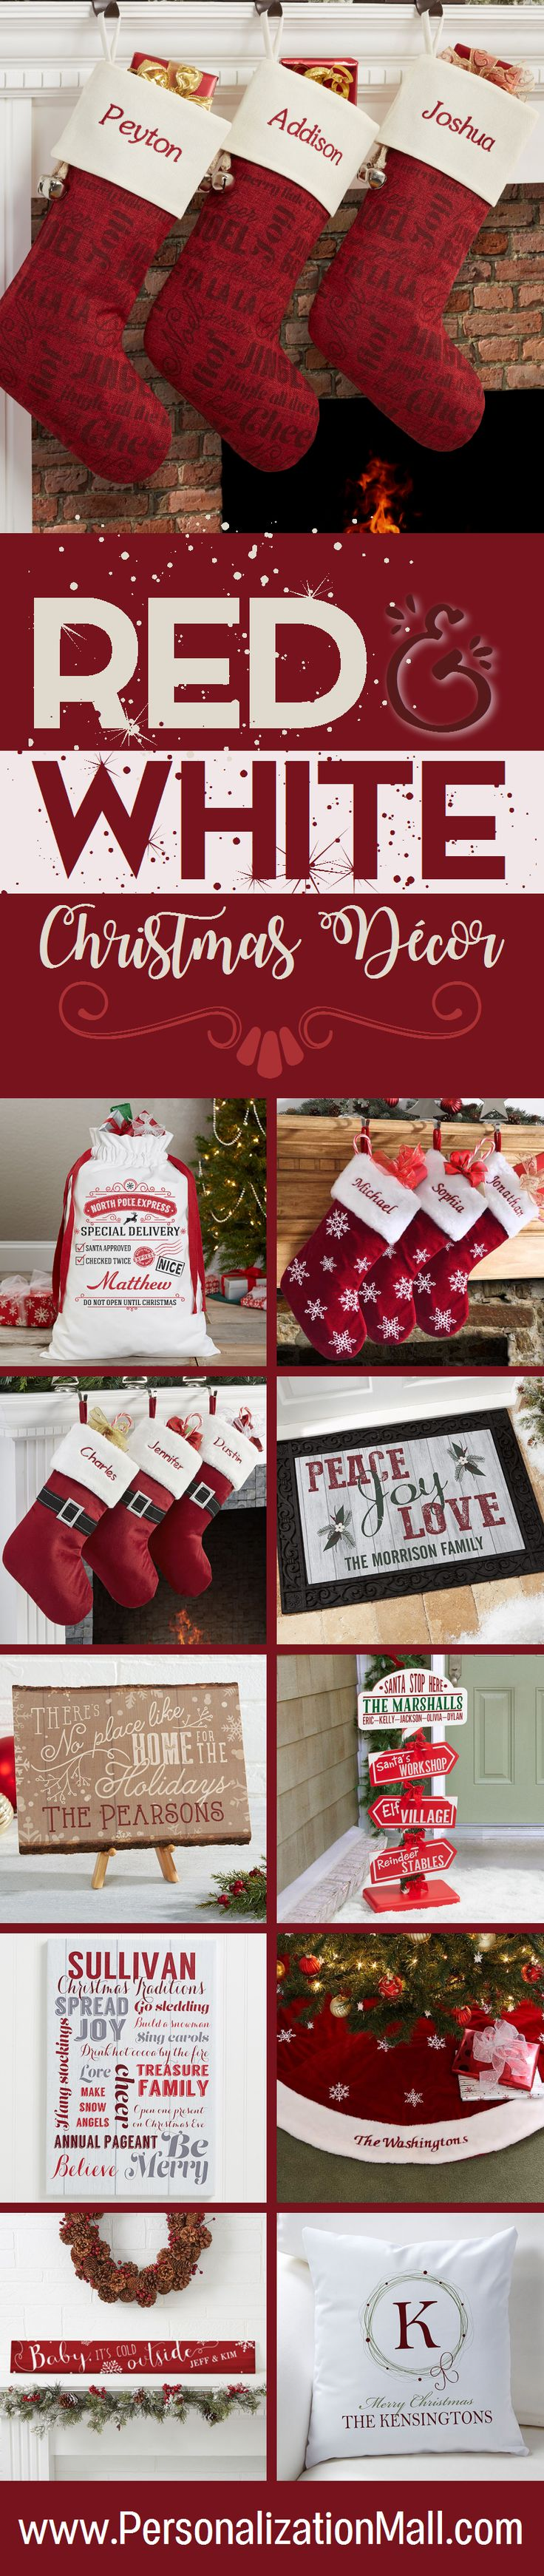 LOVE These ideas for red and white Christmas decorations! They have TONS of beautiful personalized stockings and Christmas signs and more. And I LOVE the red and white Christmas décor idea - makes for such a pretty Christmas mantle!